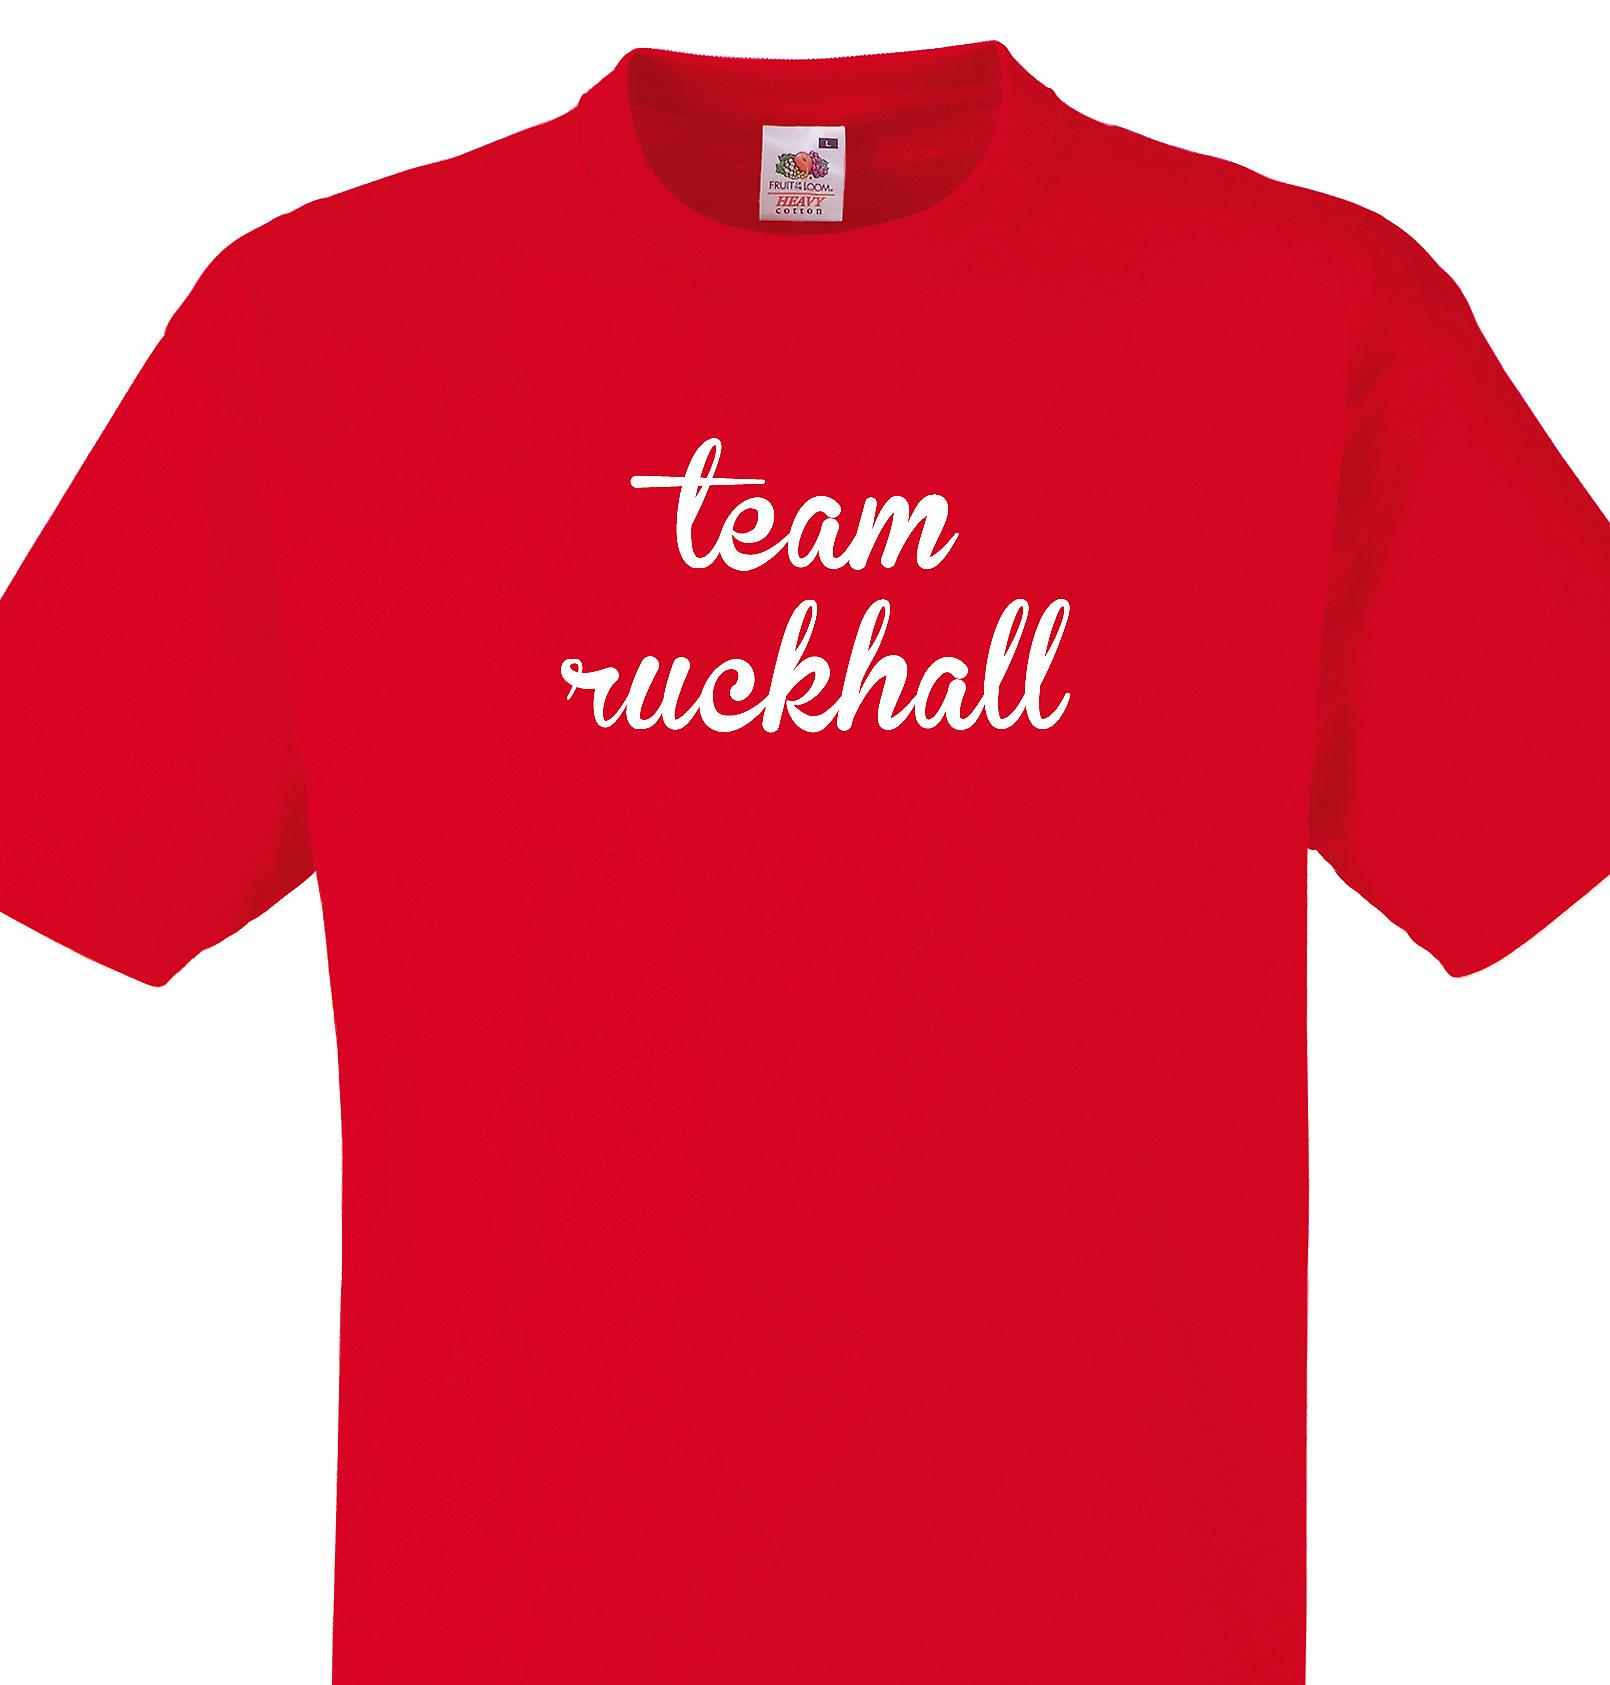 Team Ruckhall Red T shirt